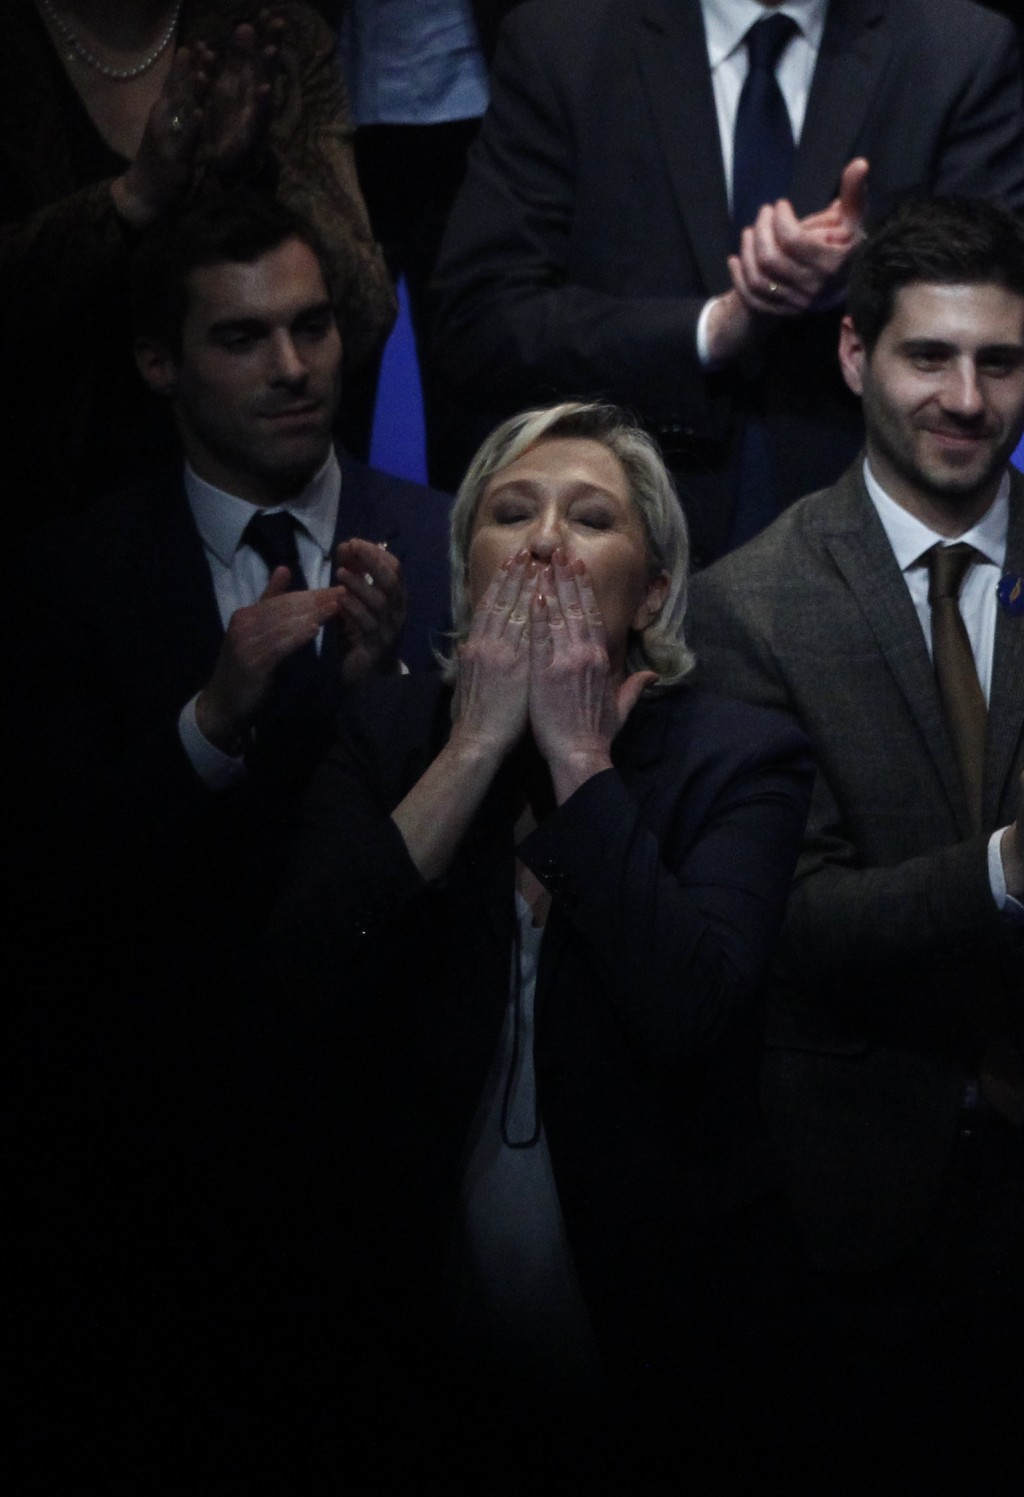 French far right leader Marine Le Pen reacts after her speech during the weekend's party congress in Lille, northern France, Sunday, March. 11, 2018.